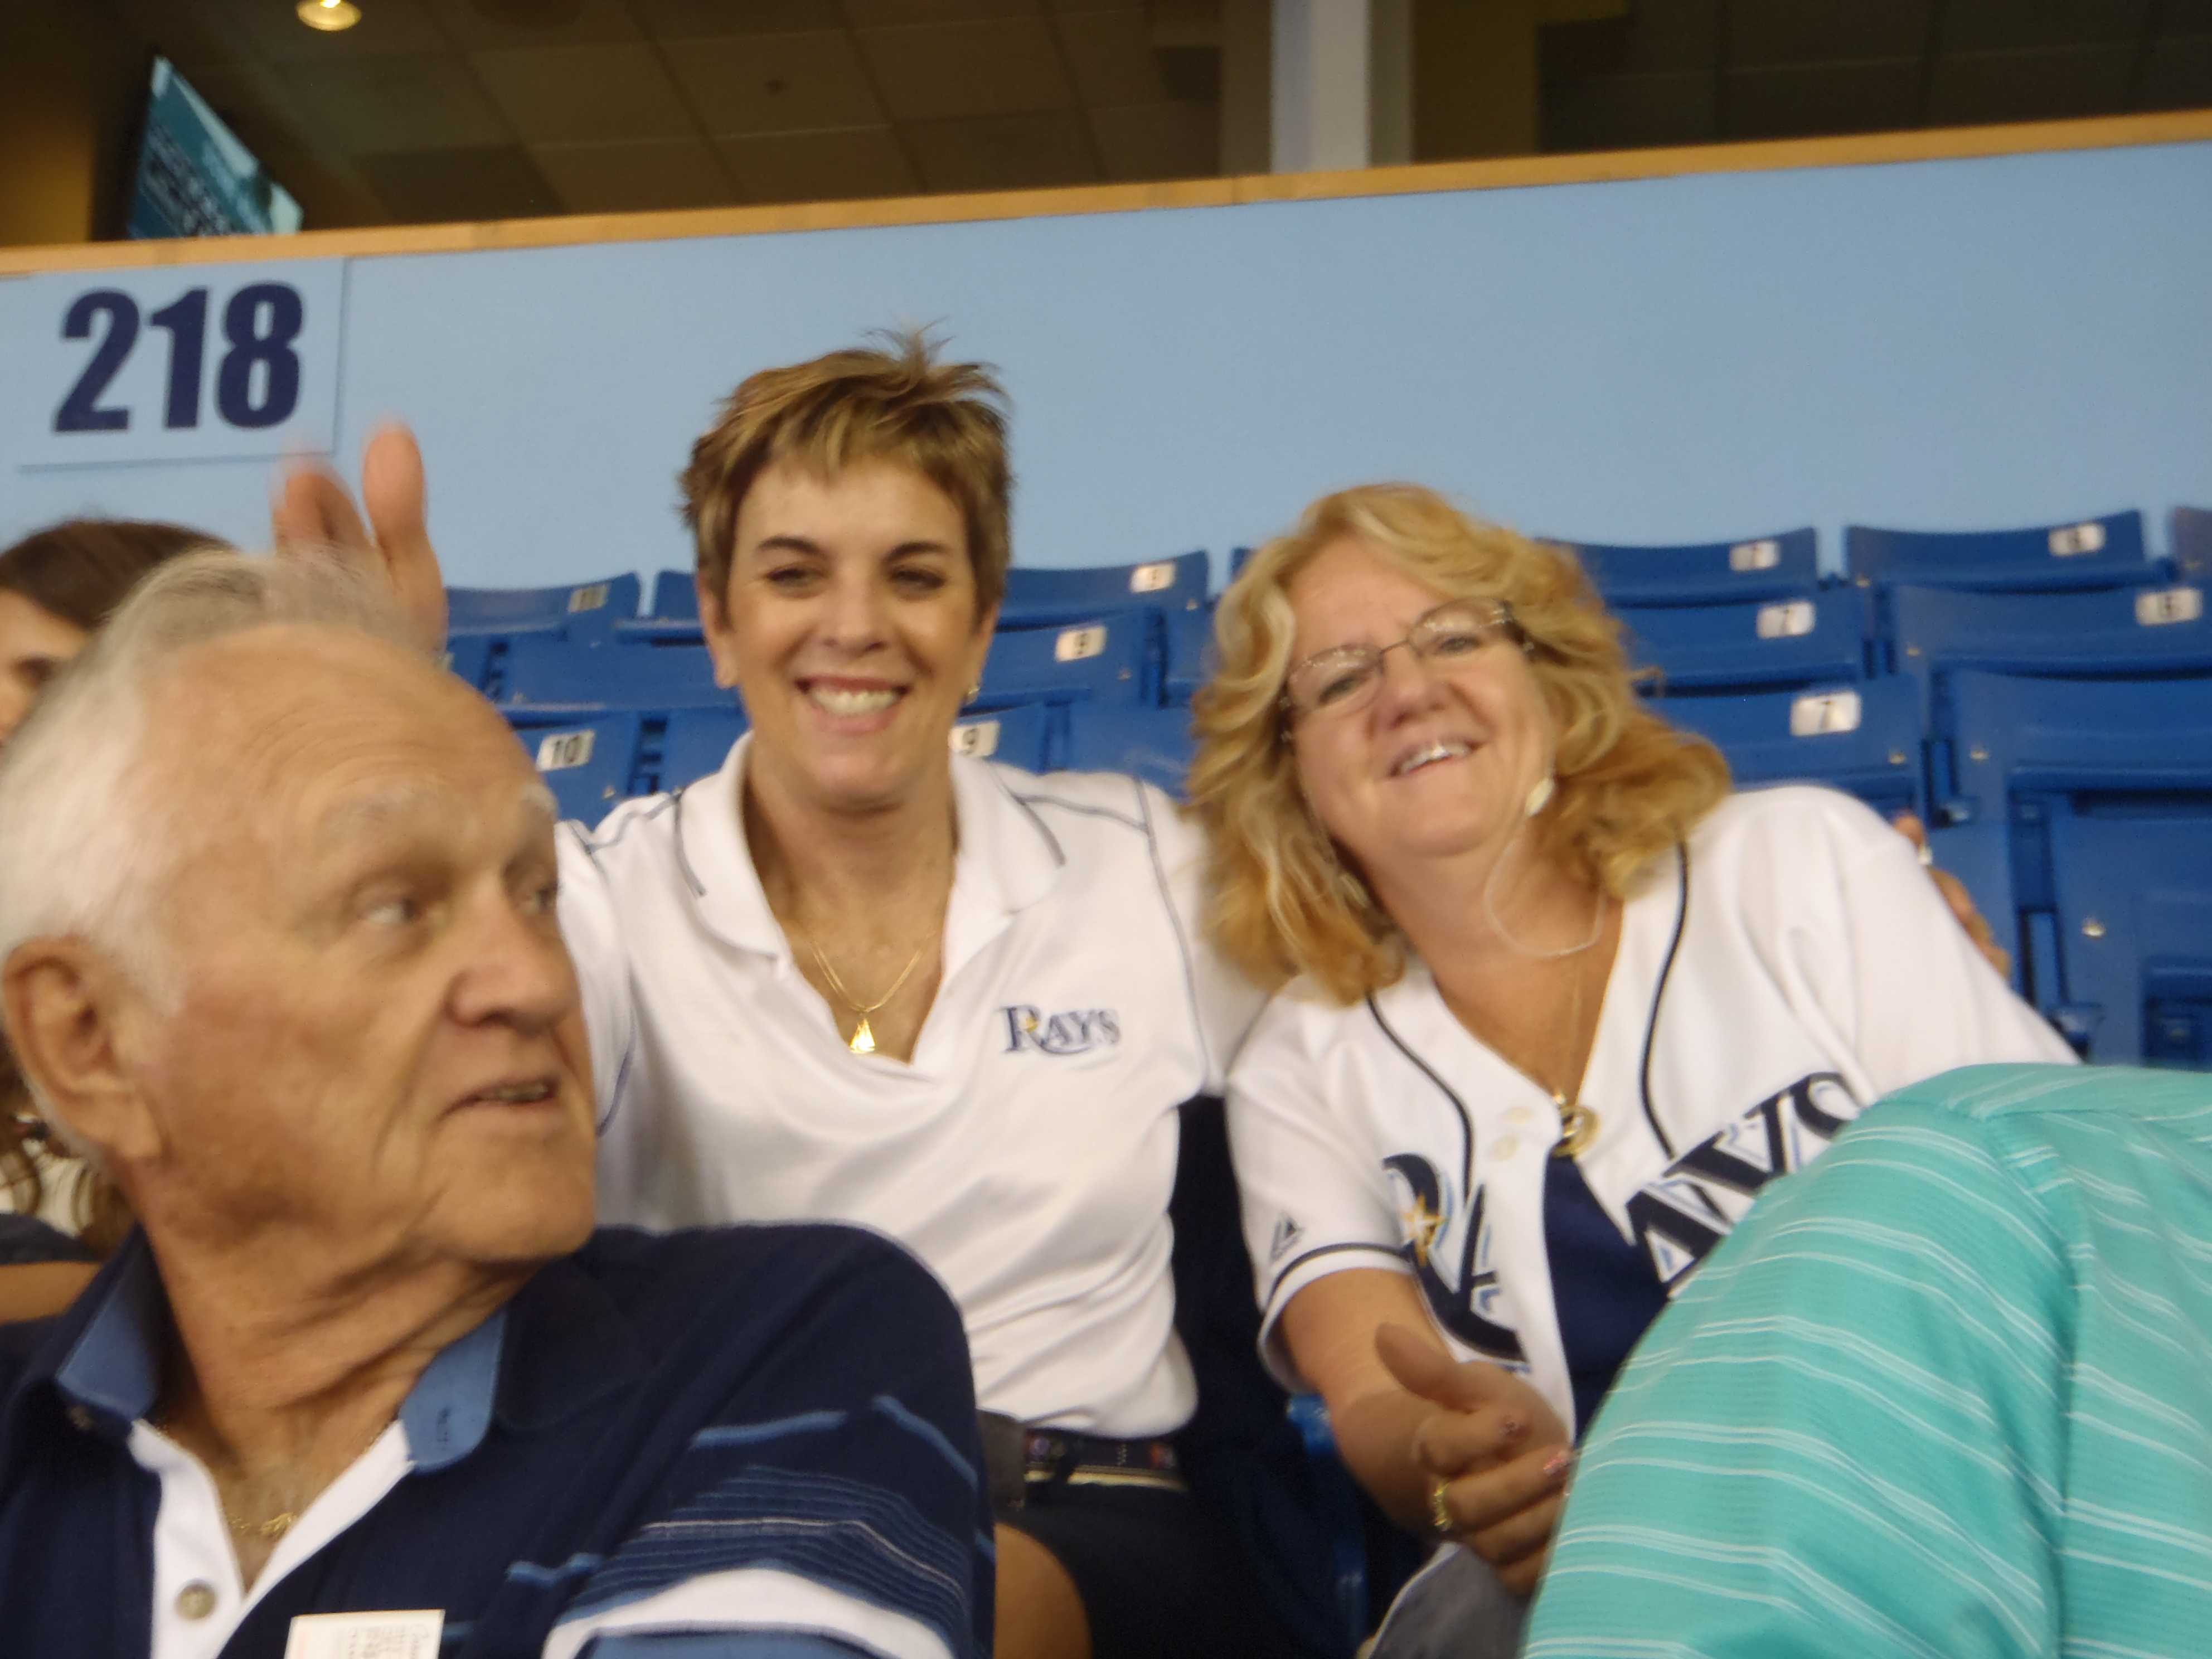 Having fun at the Rays game